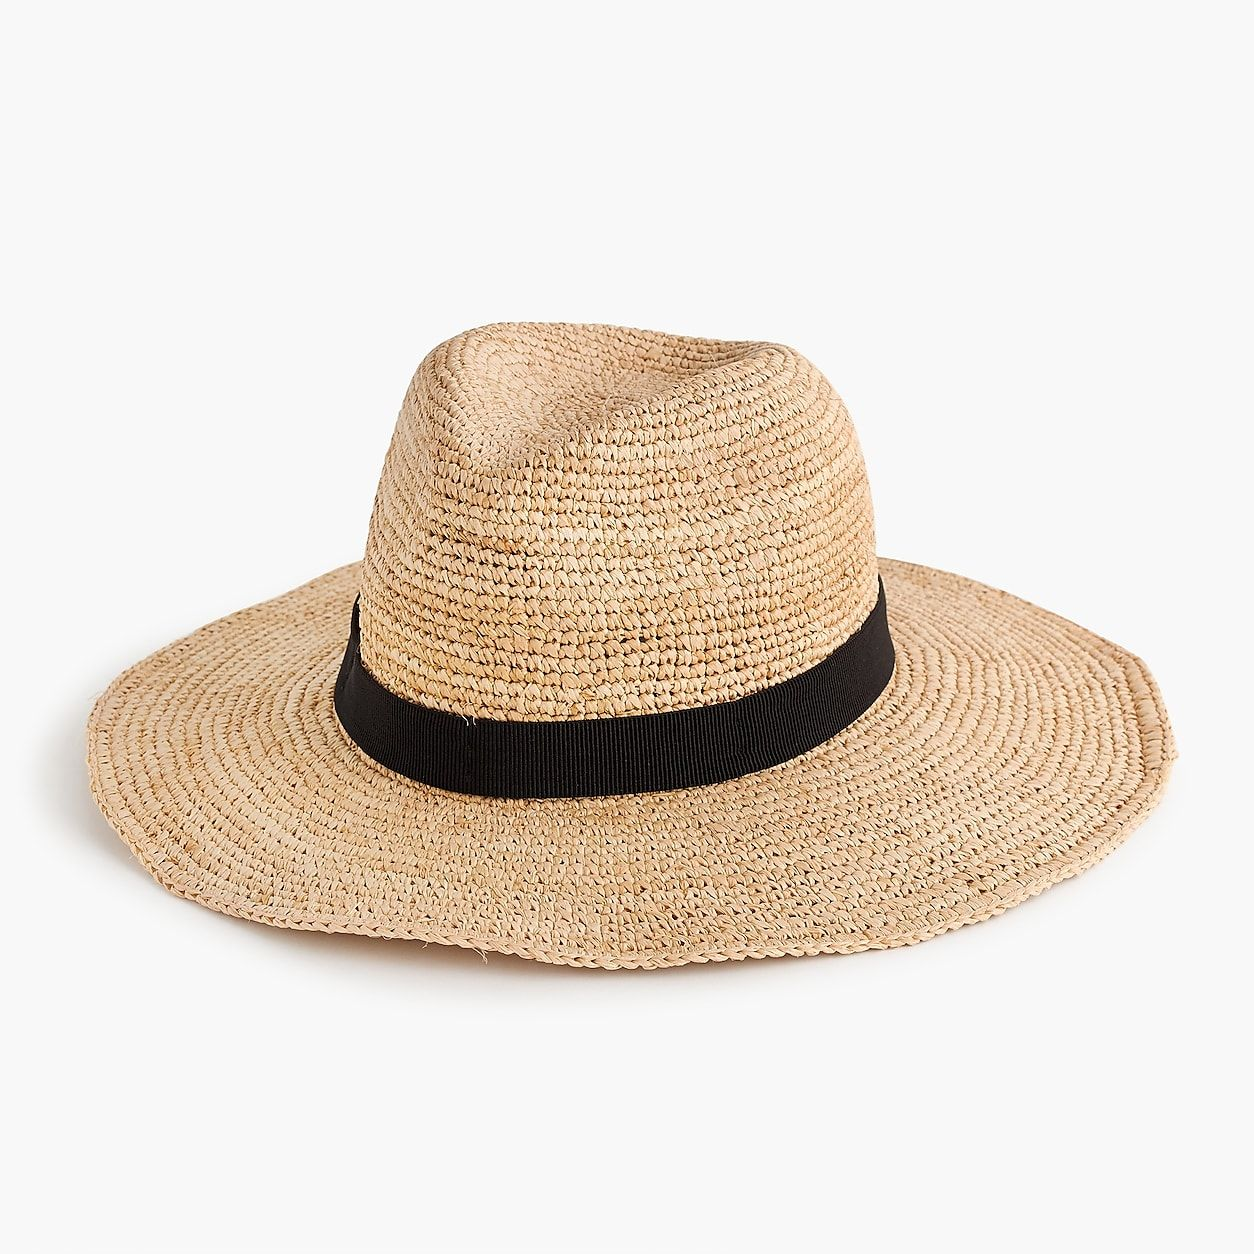 53382aef8d7e9 Wide-Brim Packable Straw Hat